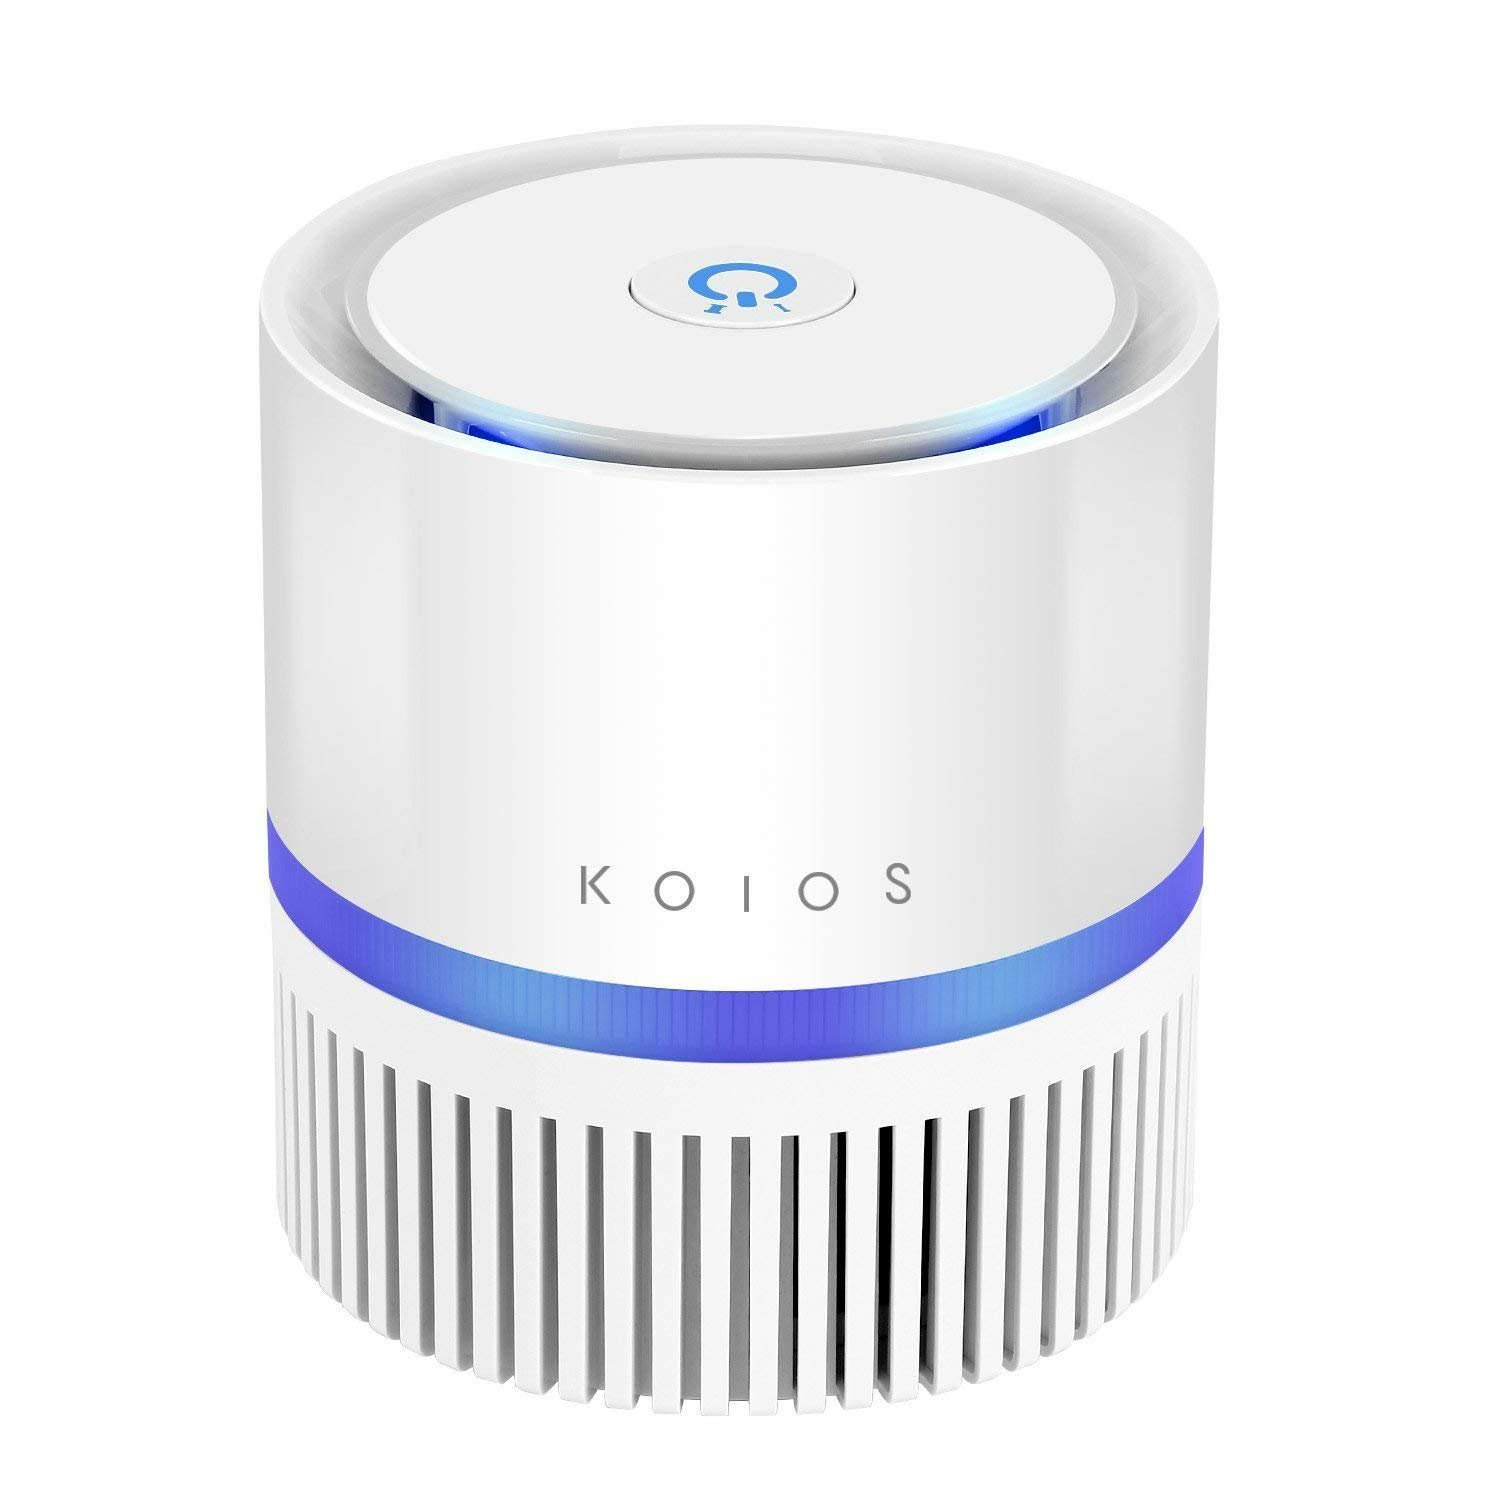 Koios Upgraded Air Purifier with True HEPA Filter, Portable Air Cleaner for Rooms and Offices, Odor Cleaner with 3 Stage Filtration System, Night Light (Air Purifier-White)